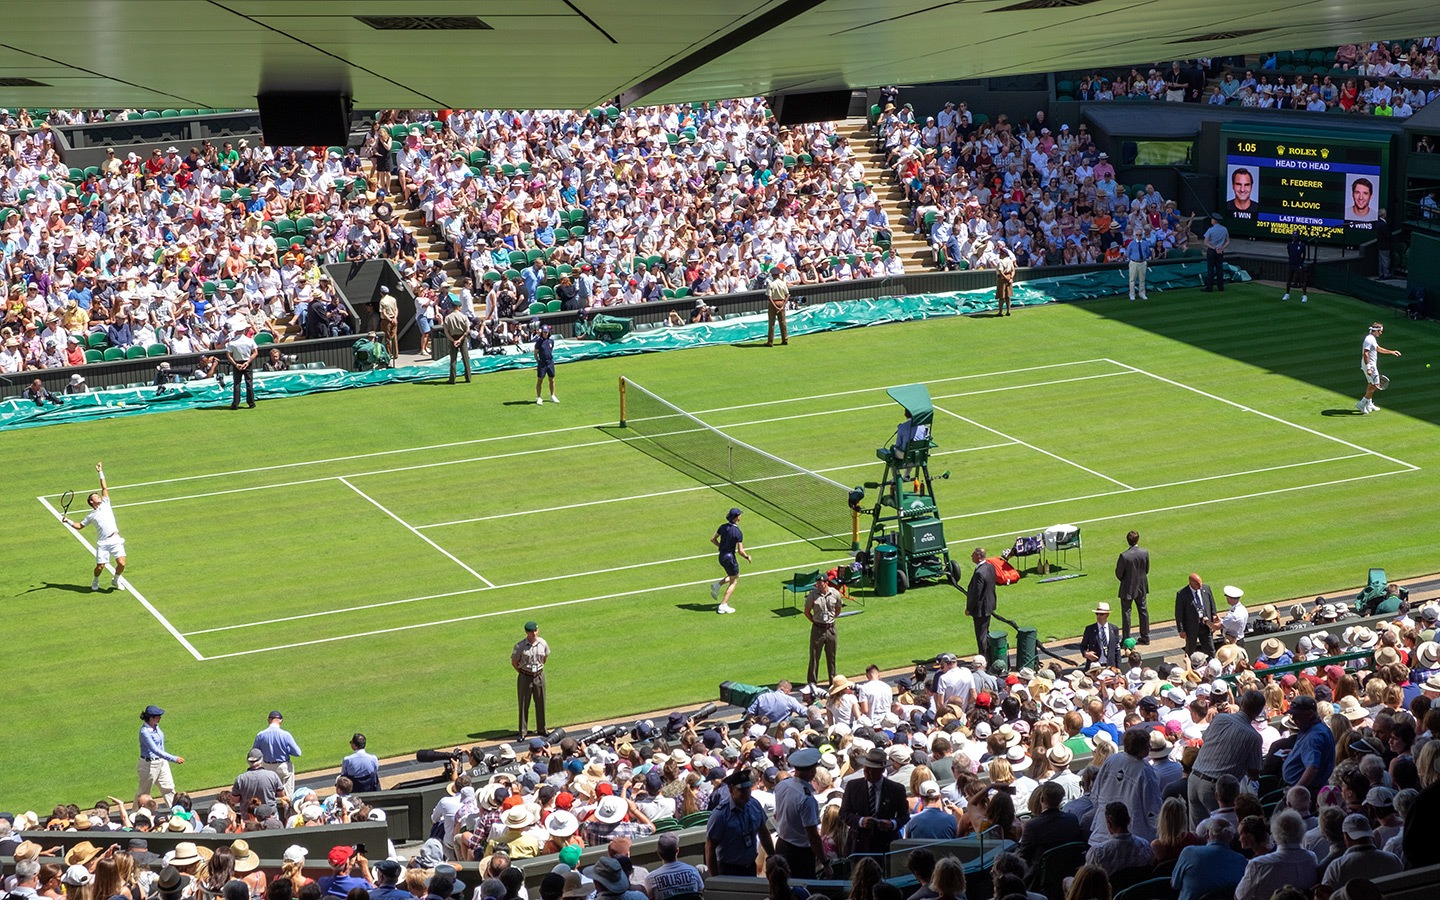 Centre Court at Wimbledon Tennis Championships